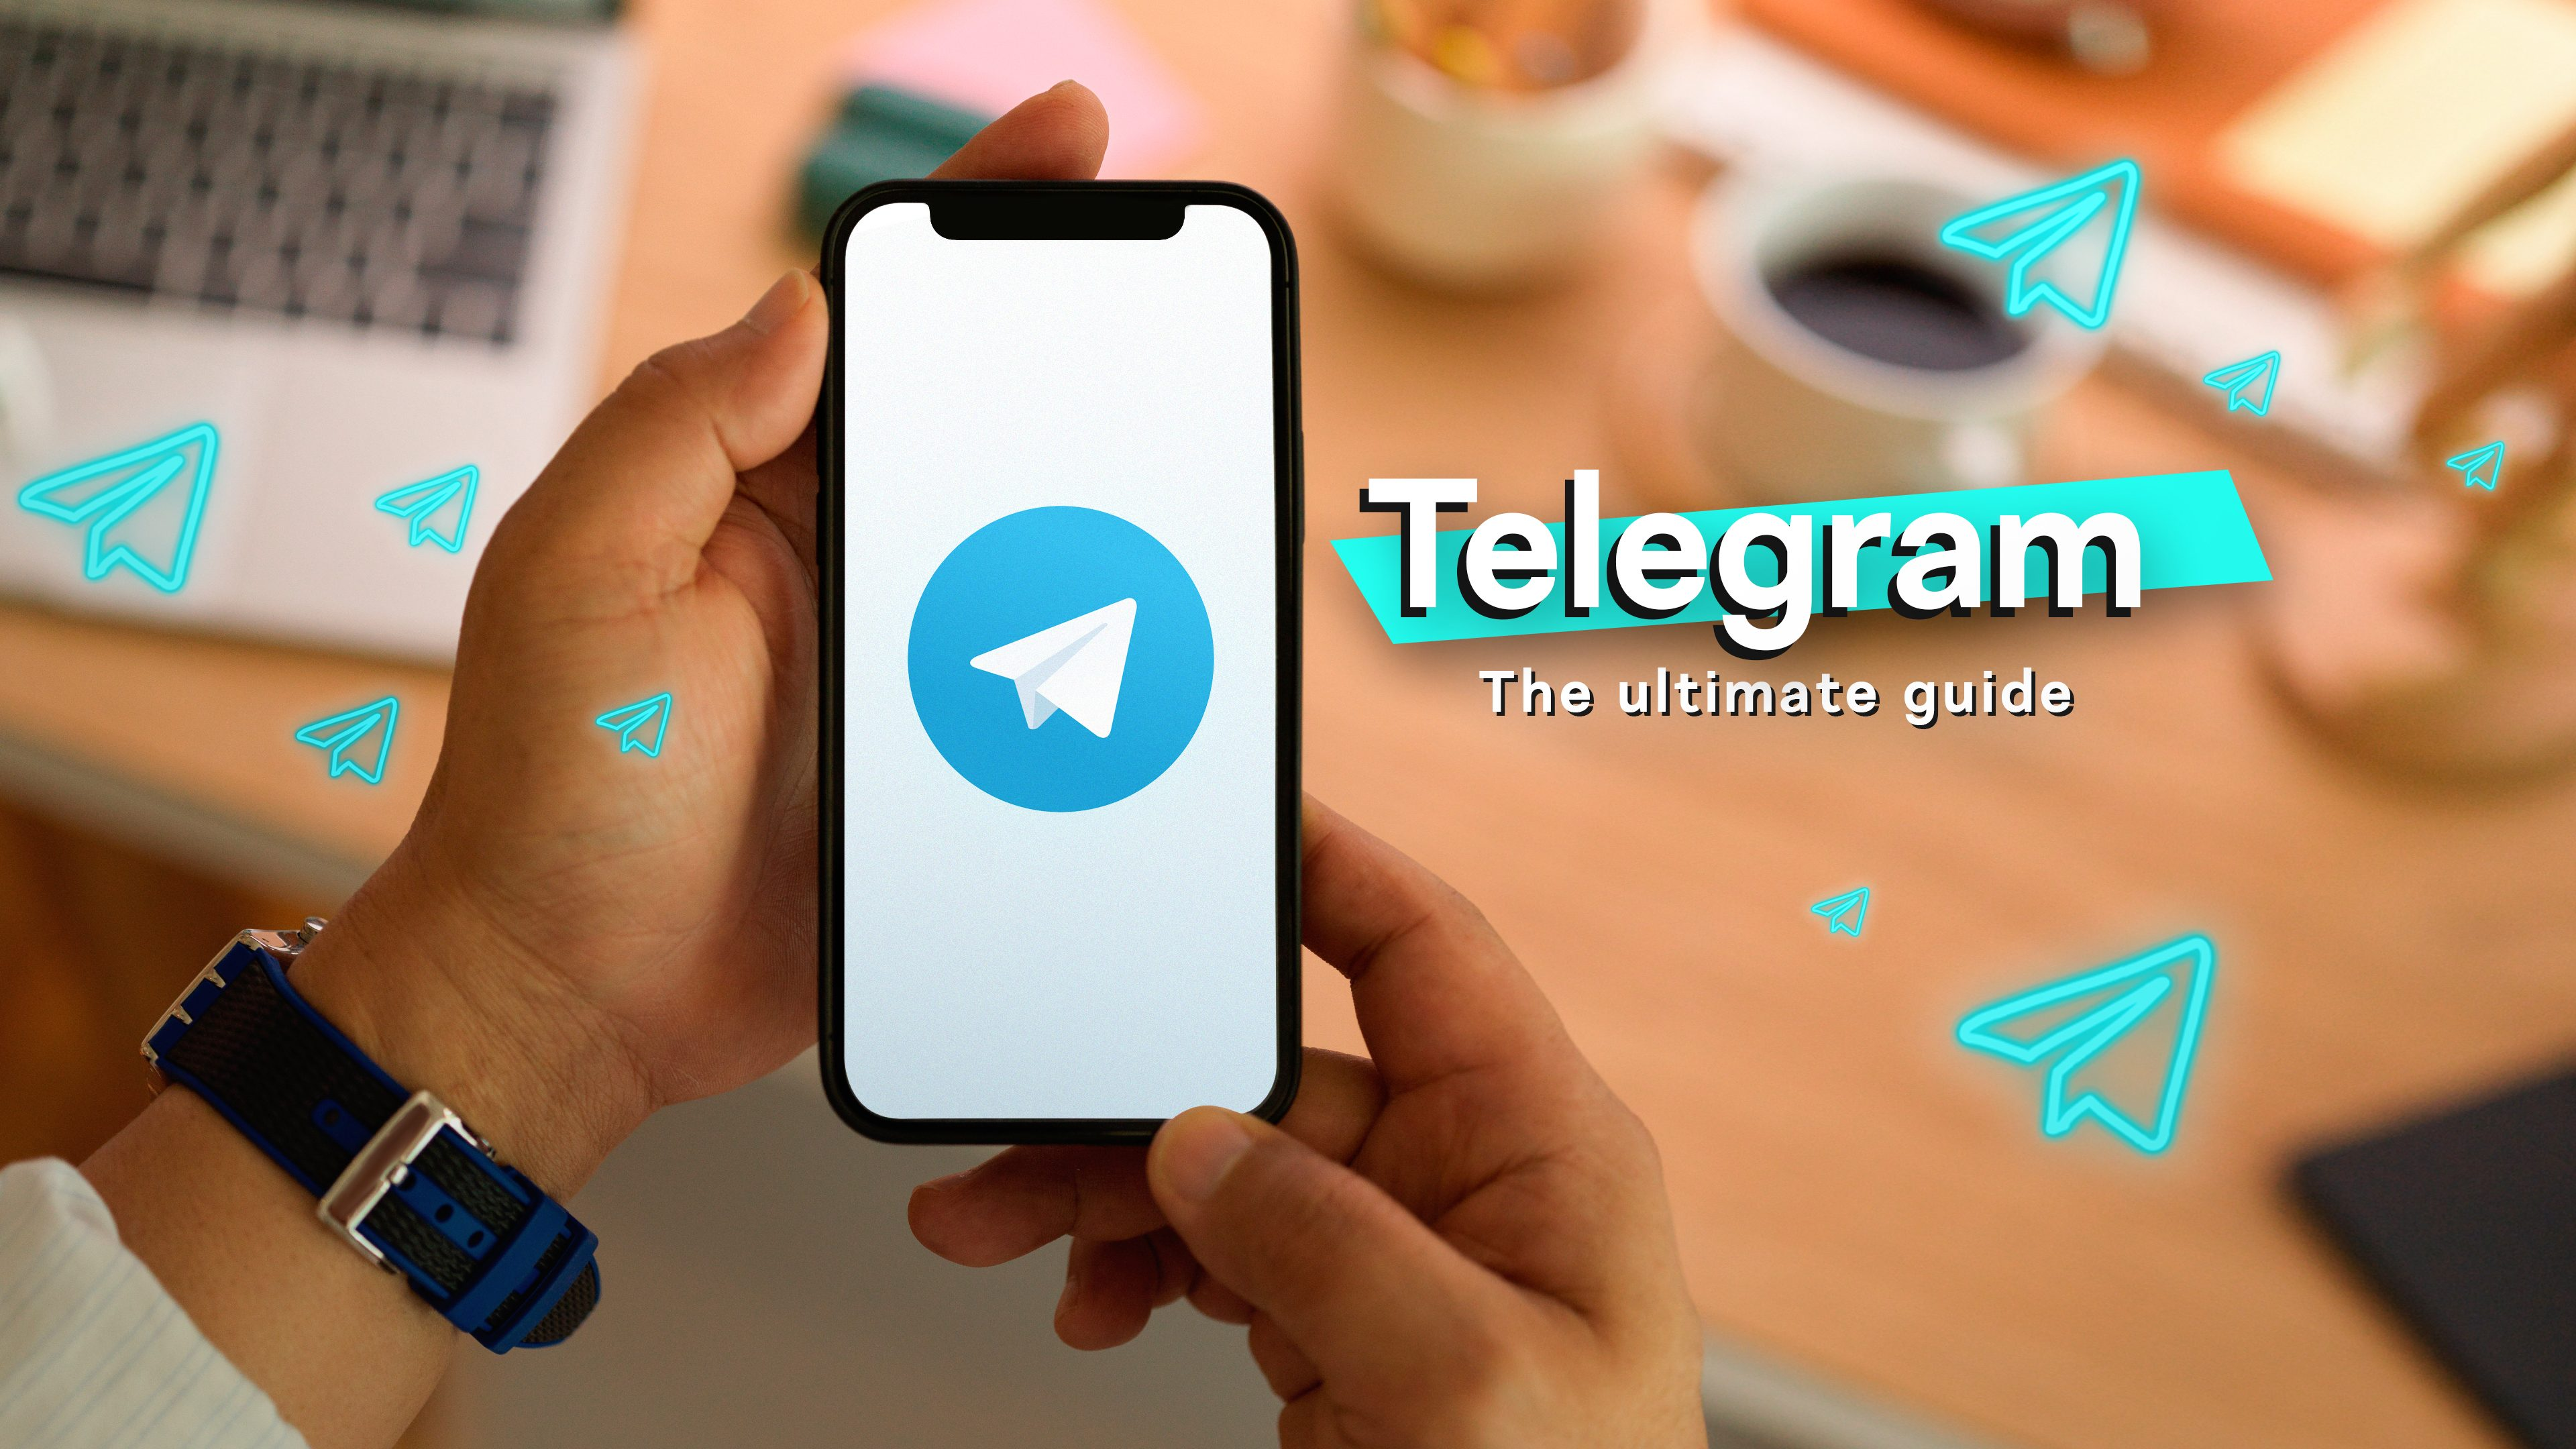 Telegram: Everything you need to know about the messaging app | NextPit